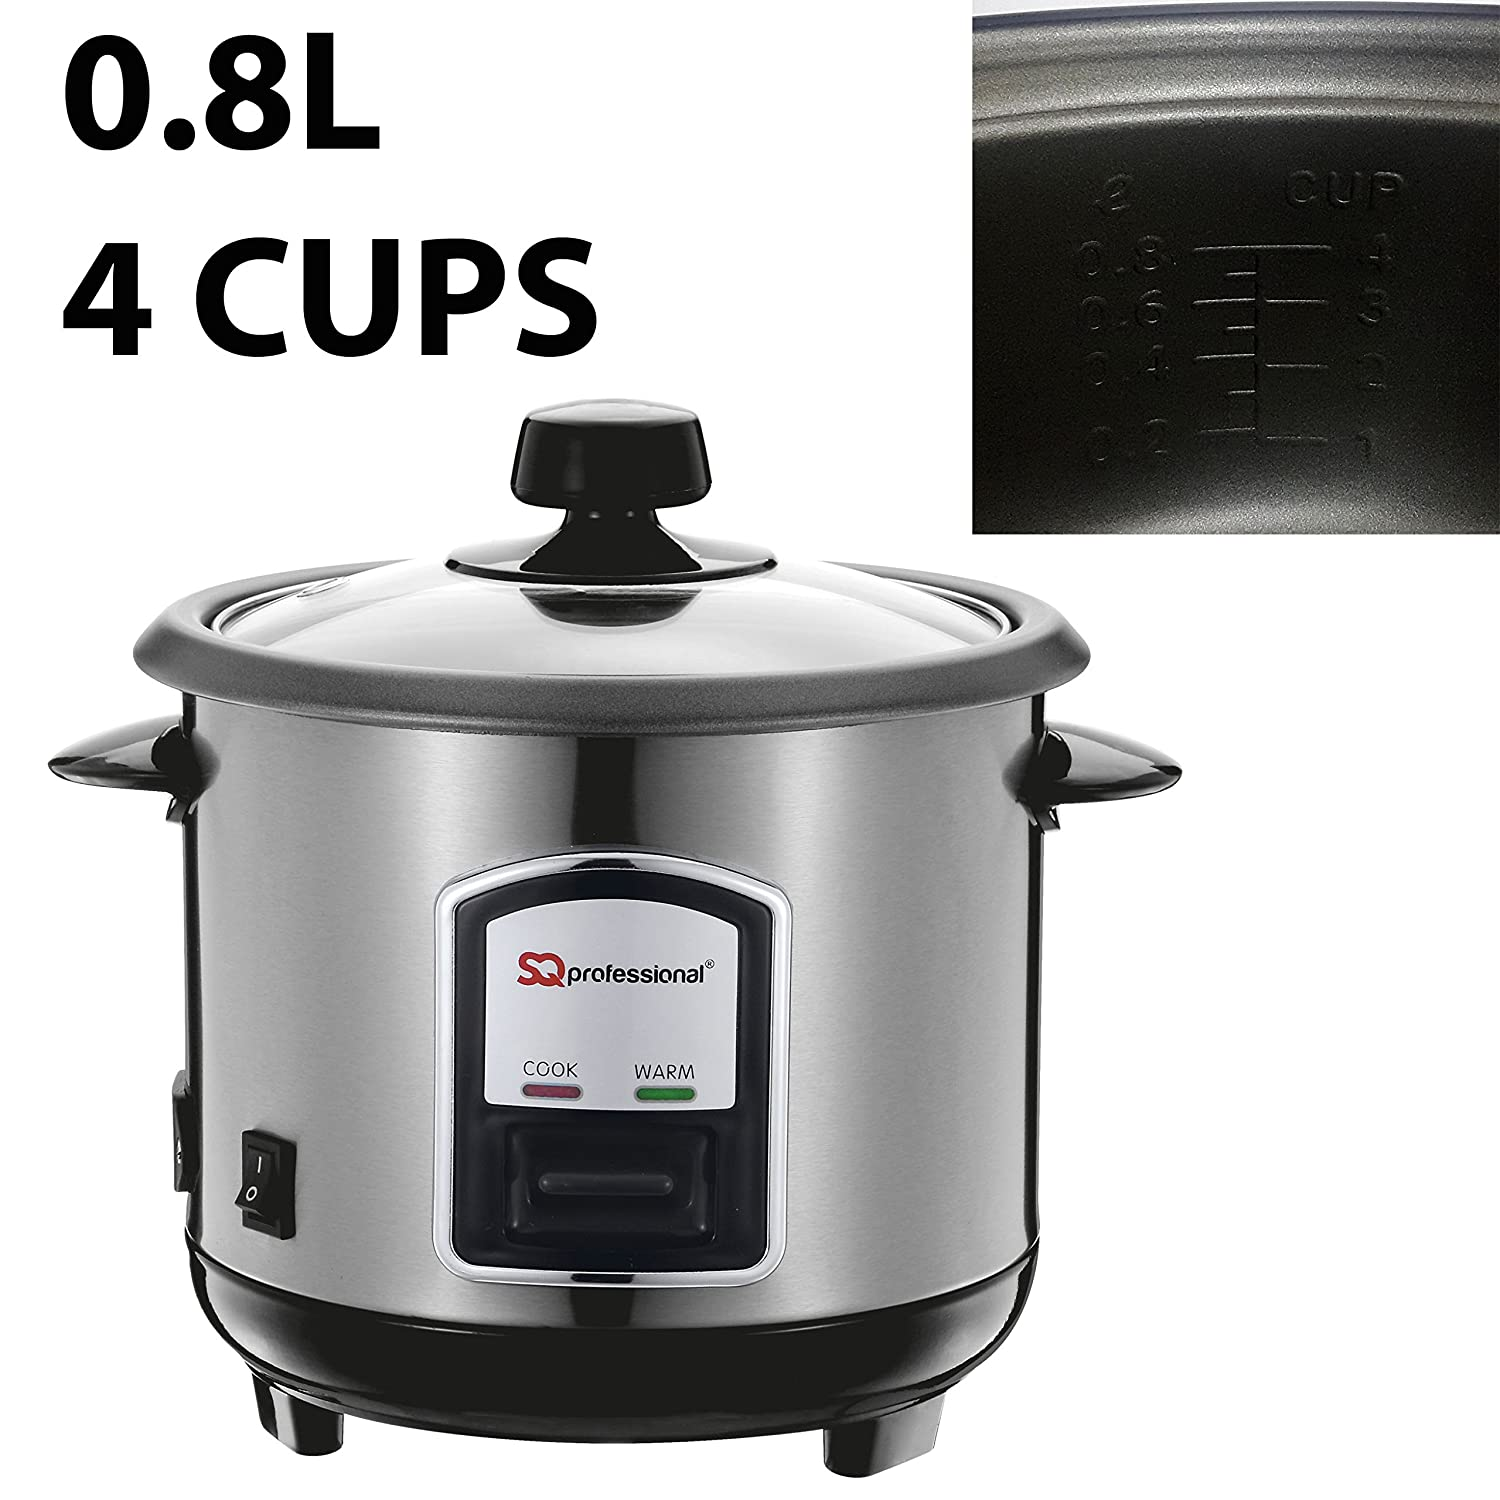 SQ Professional Acciaio inossidabile Rice Cooker 0.8L 350W Argento Others